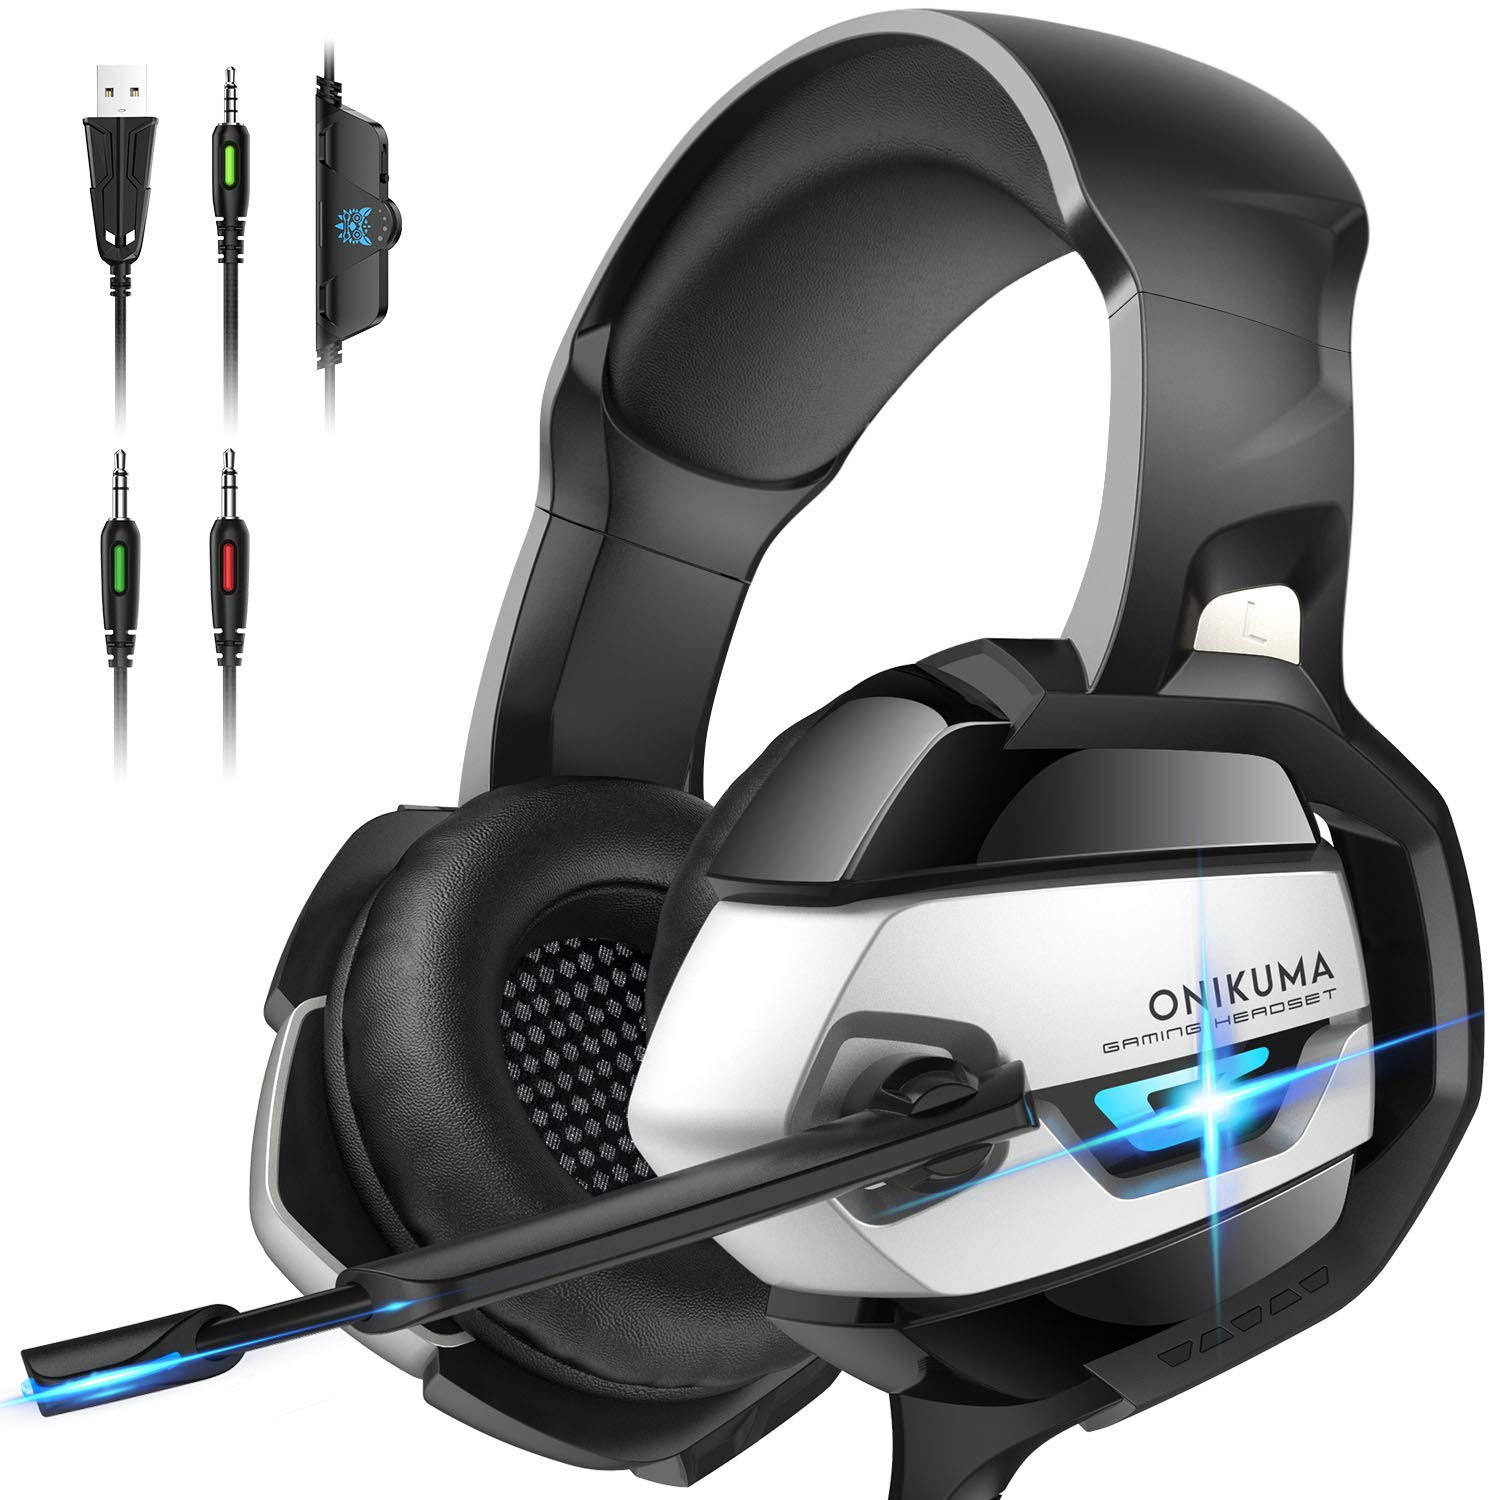 ONIKUMA Gaming Headset - Xbox One Headset PS4 Headset PC Headset with Noise Canceling Mic Gaming Headphones for PS4, Xbox One, PC (Adapter Not Included)